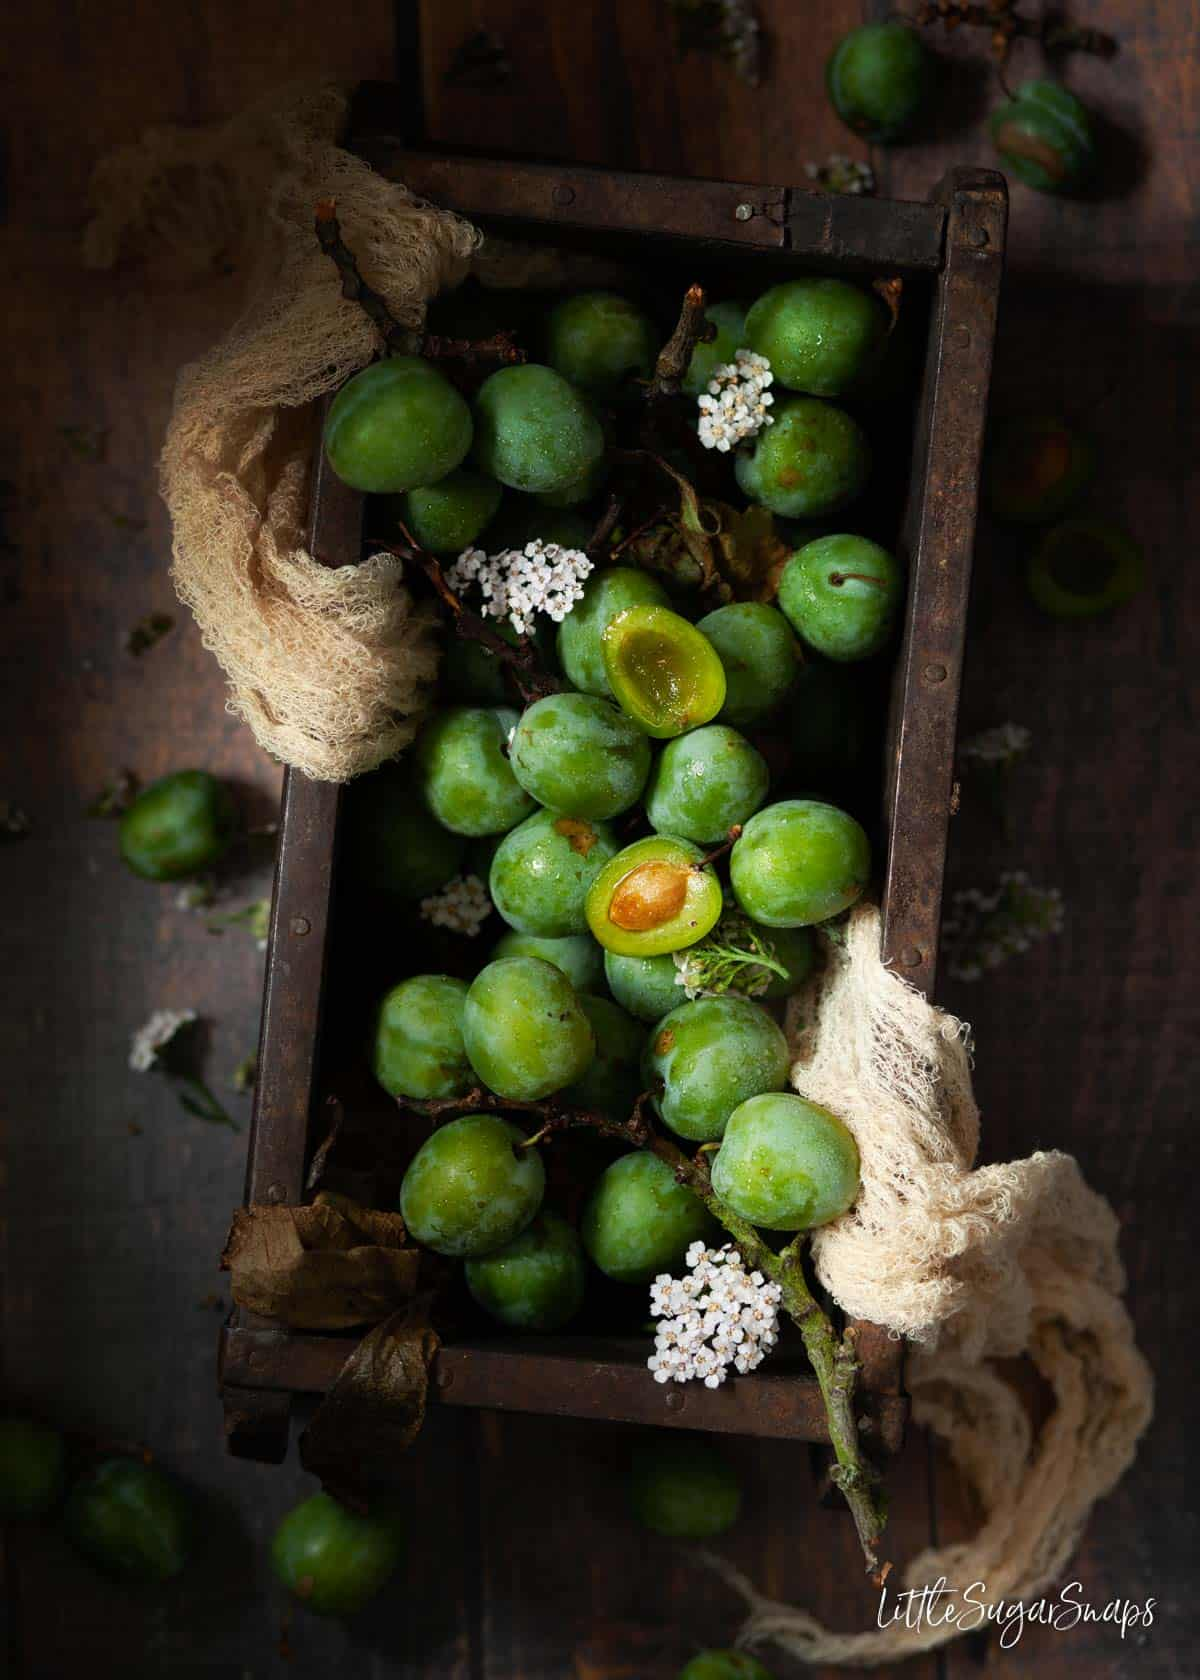 A wooden box holding lots of greengages.